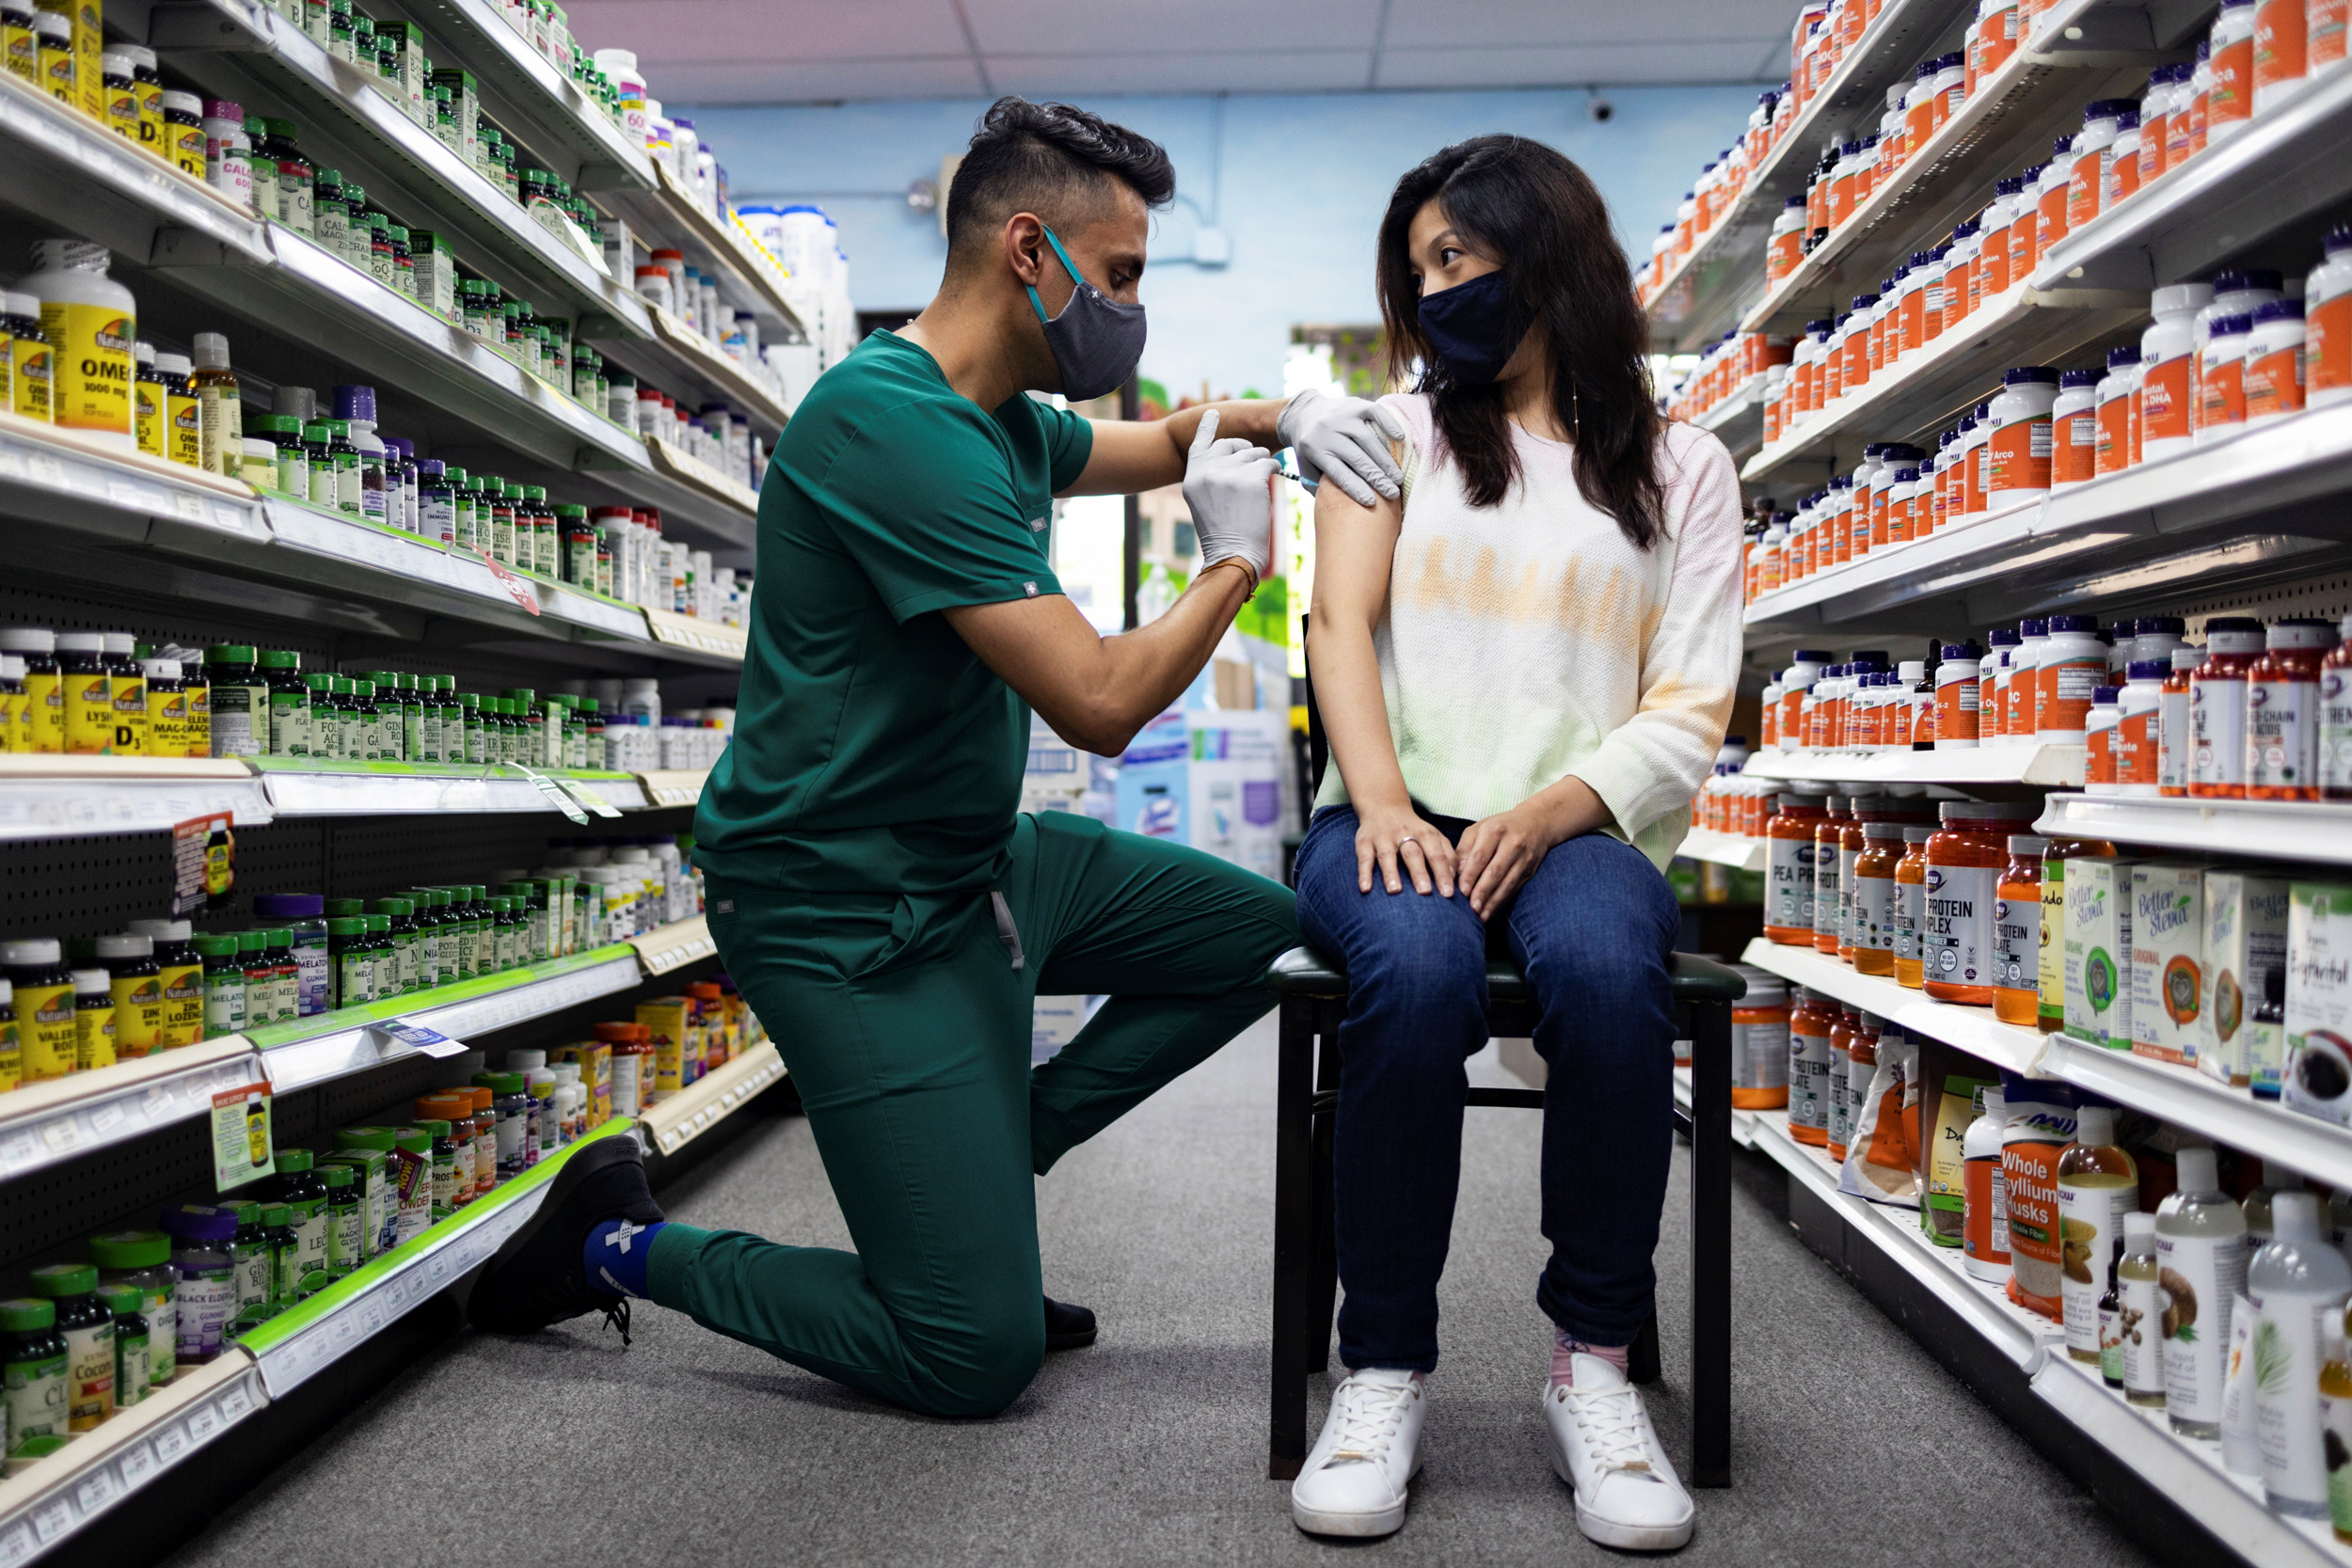 Experts call U.S. plan for booster shots 'immoral,' 'unconscionable' amid global inequity